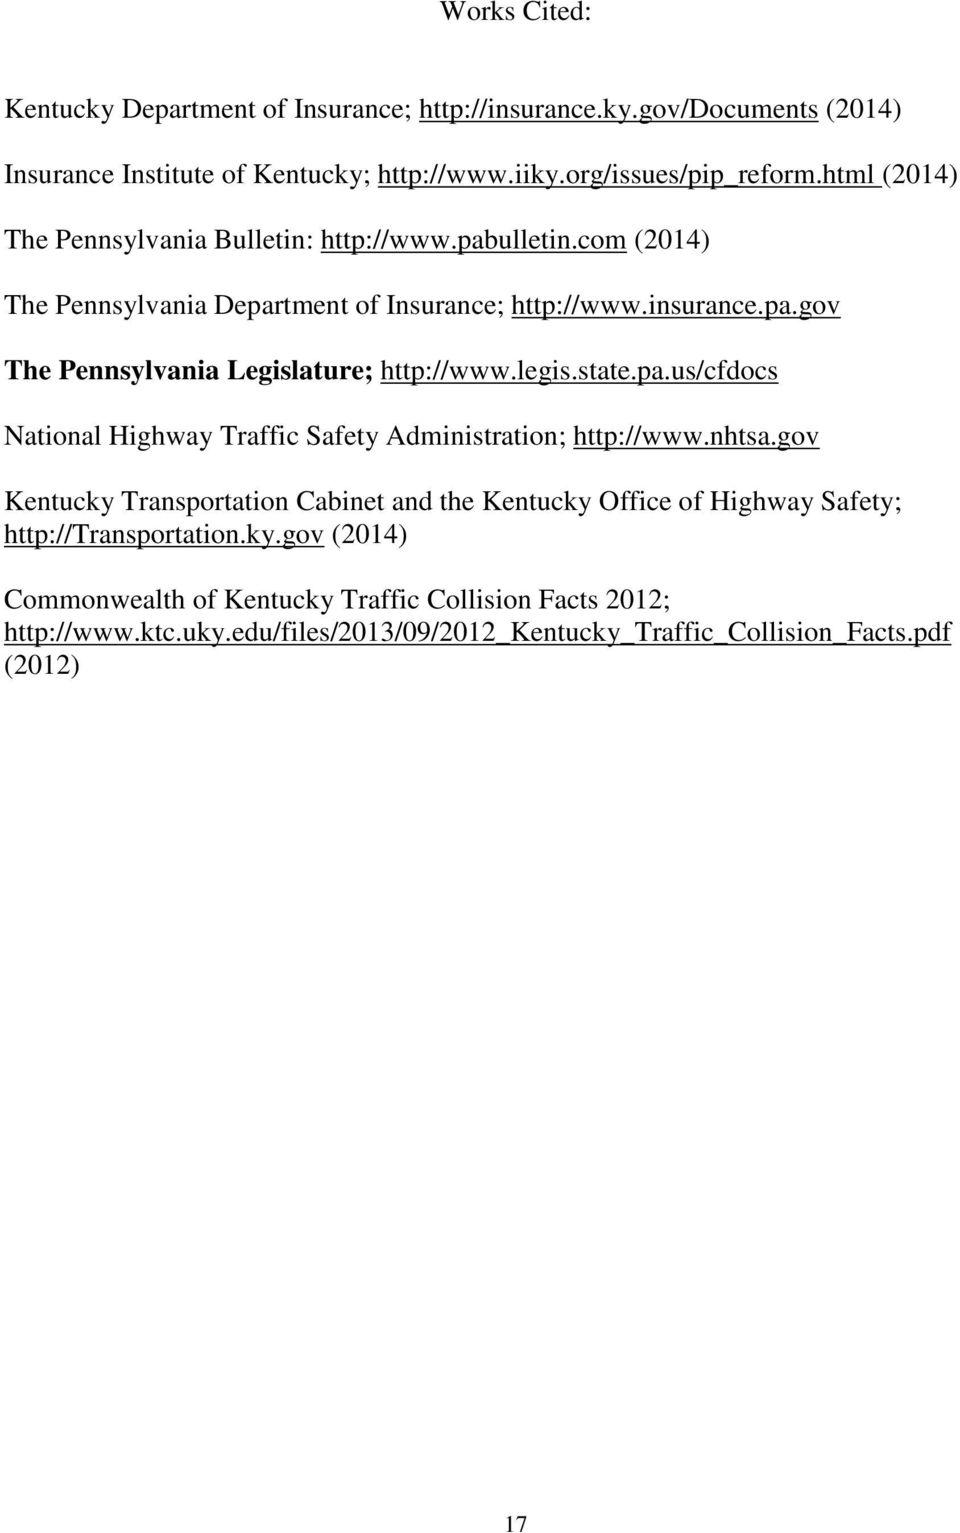 legis.state.pa.us/cfdocs National Highway Traffic Safety Administration; http://www.nhtsa.